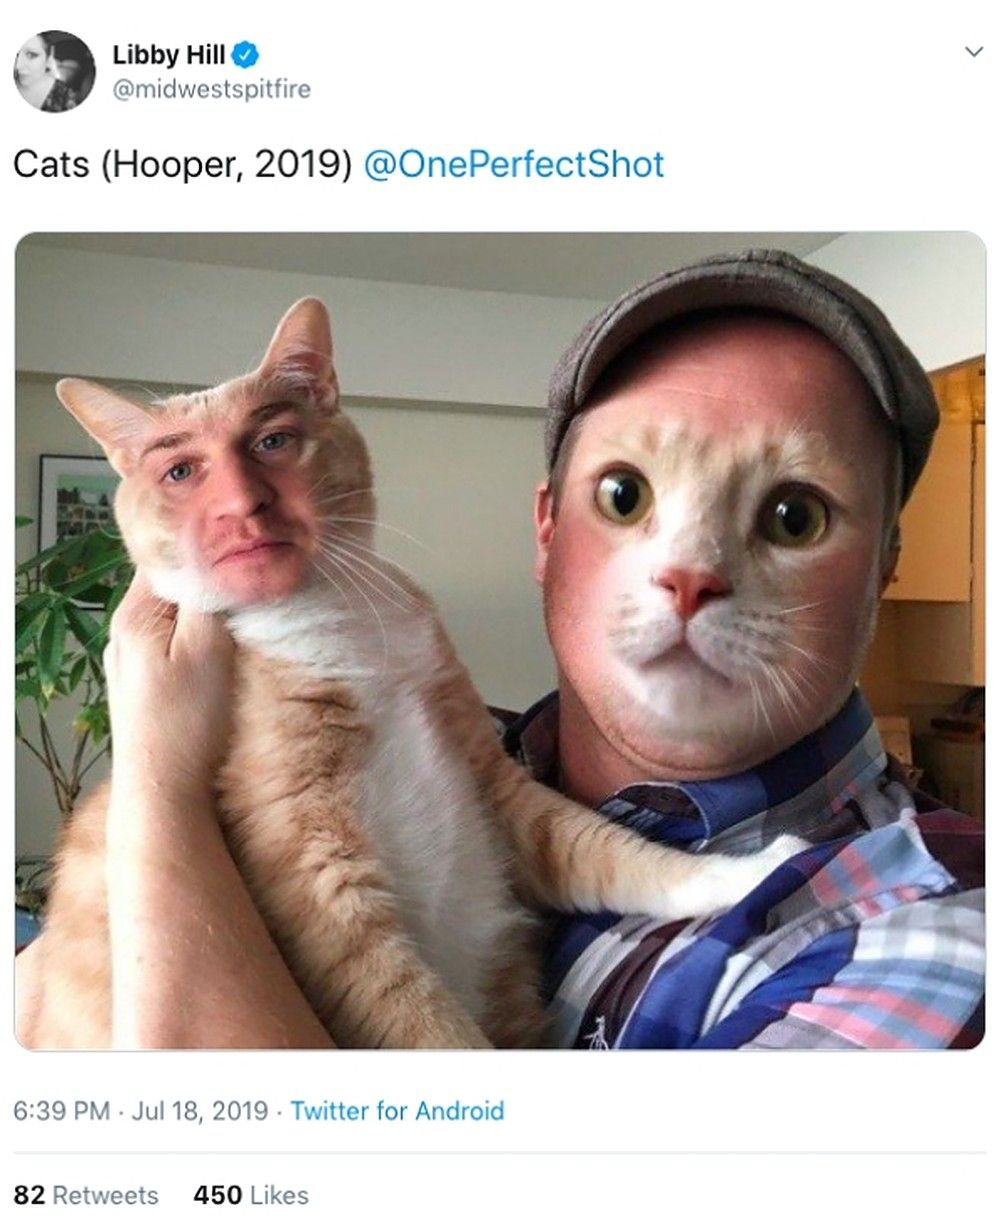 10 Hilarious Memes About Cats (2019) That Will Make You Laugh